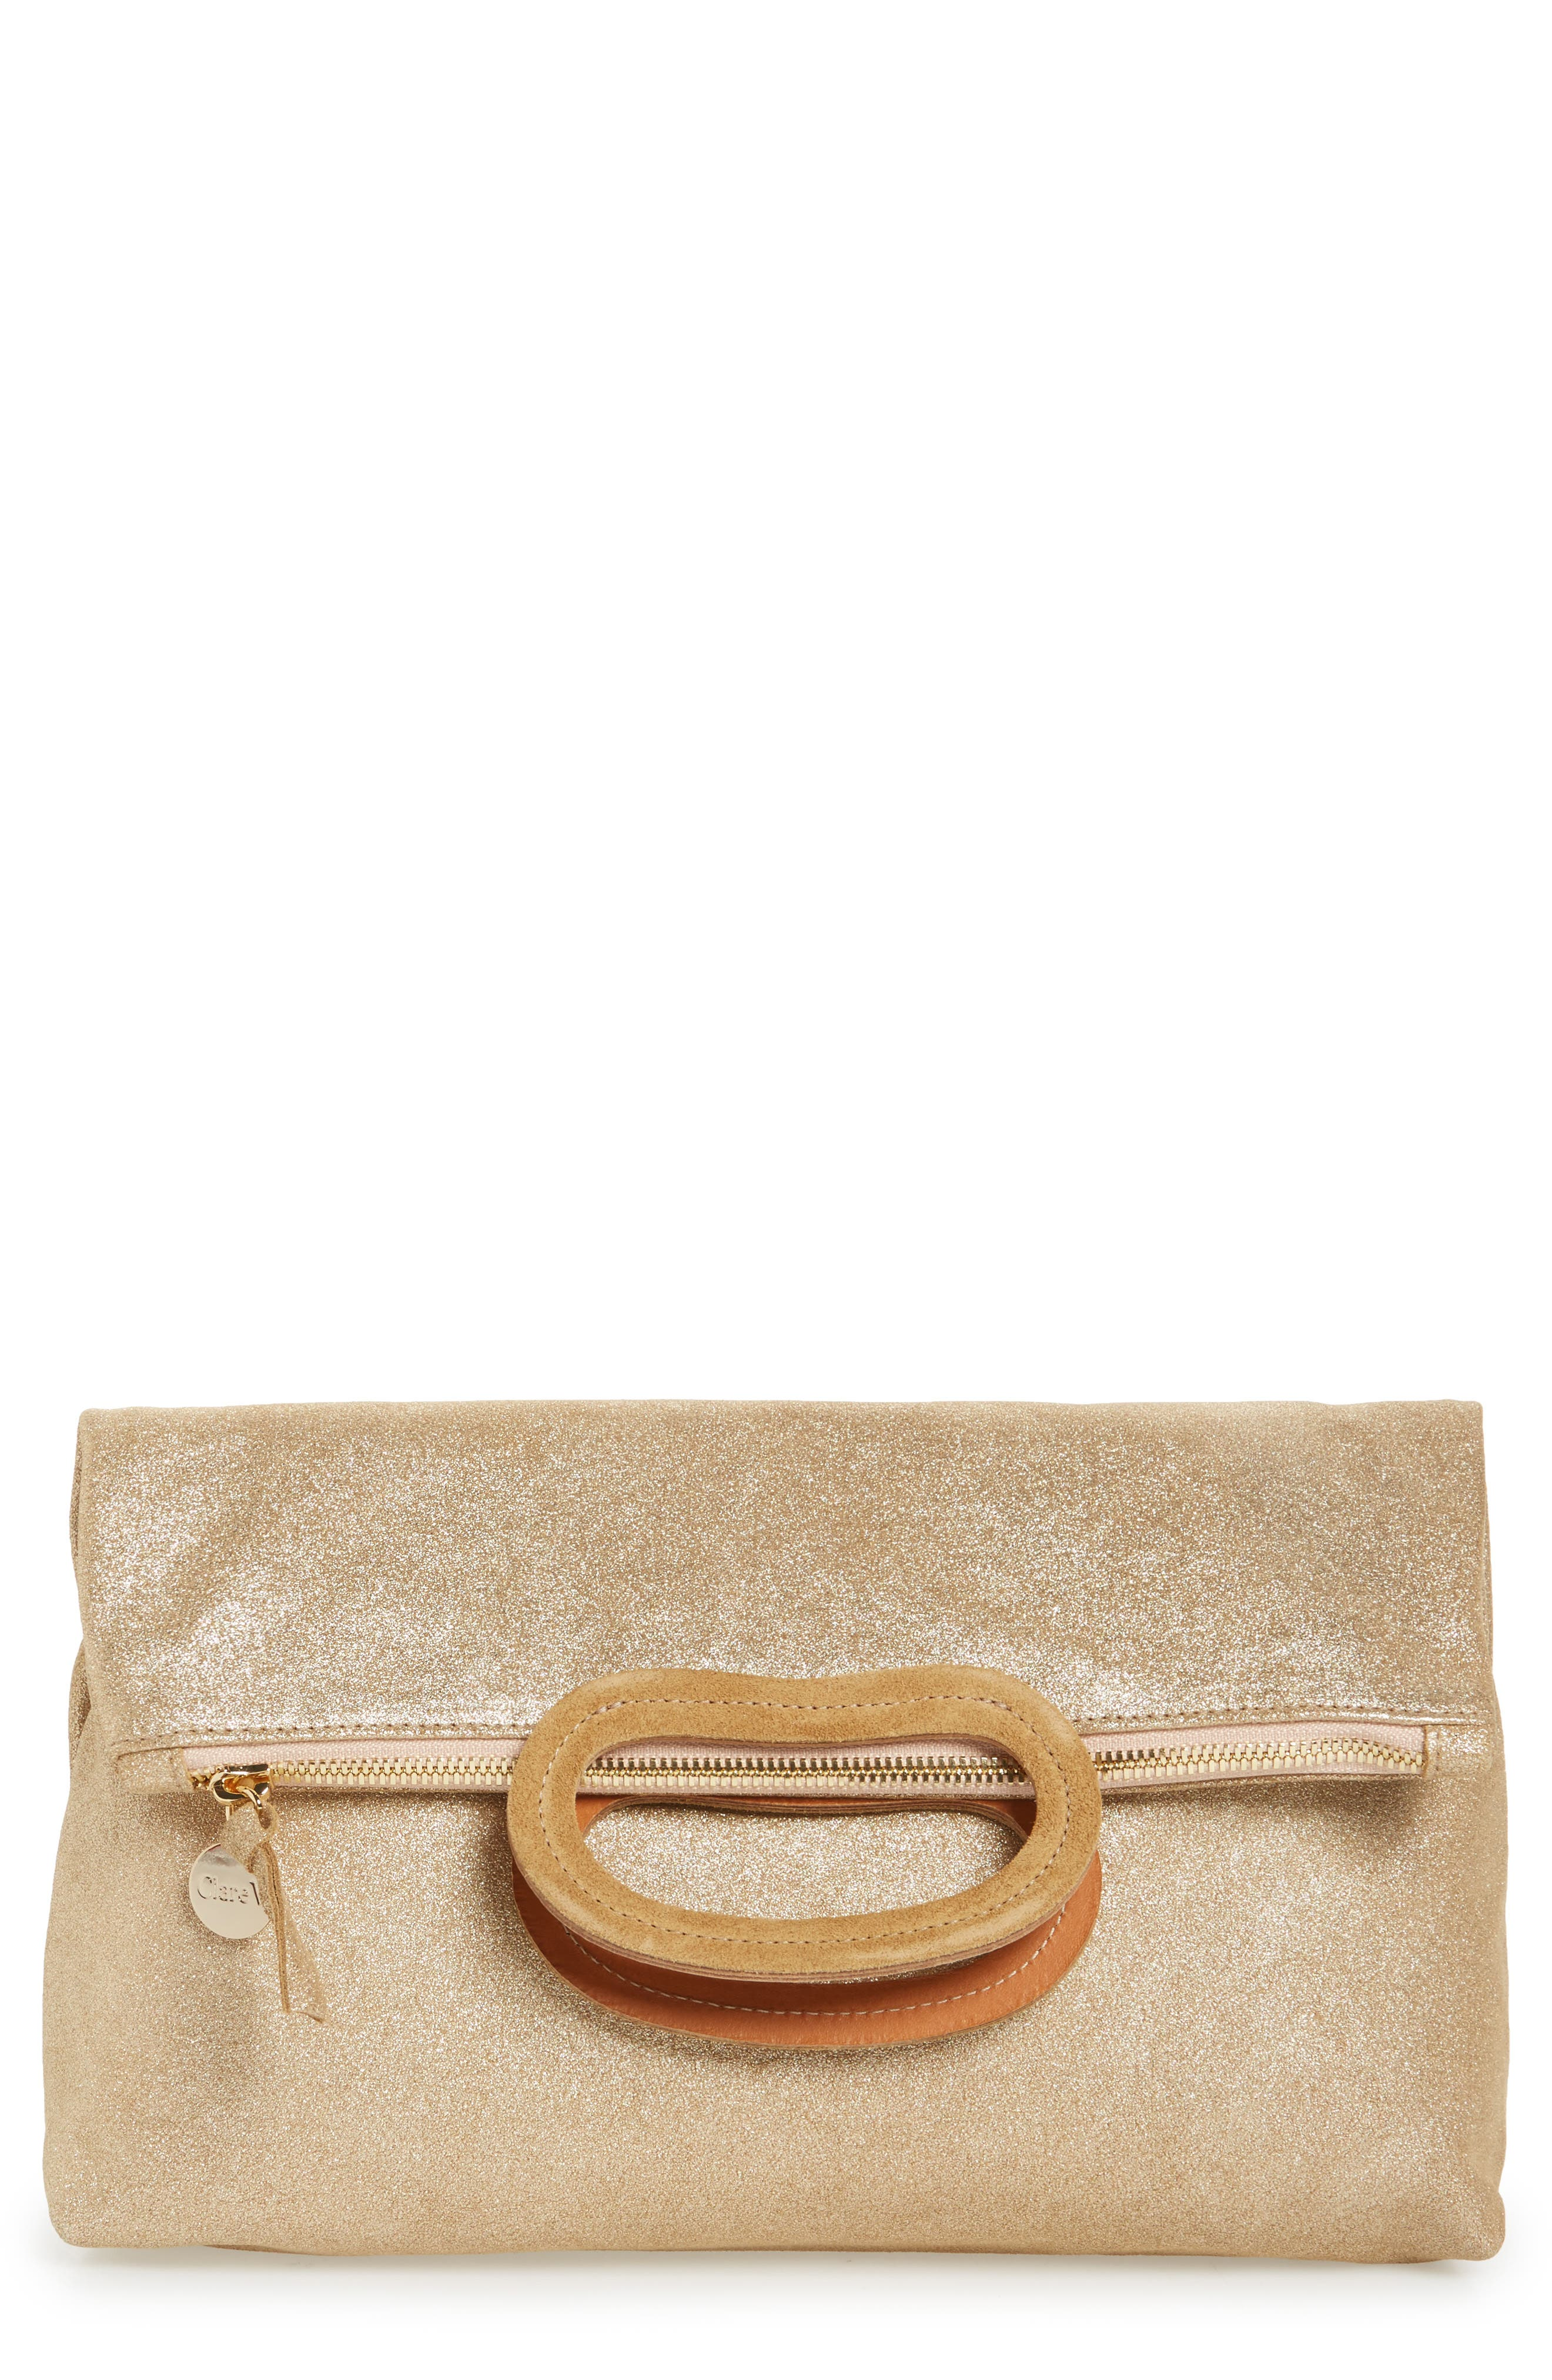 Marcelle Maison Leather Tote,                             Main thumbnail 1, color,                             Gold Shimmer Suede